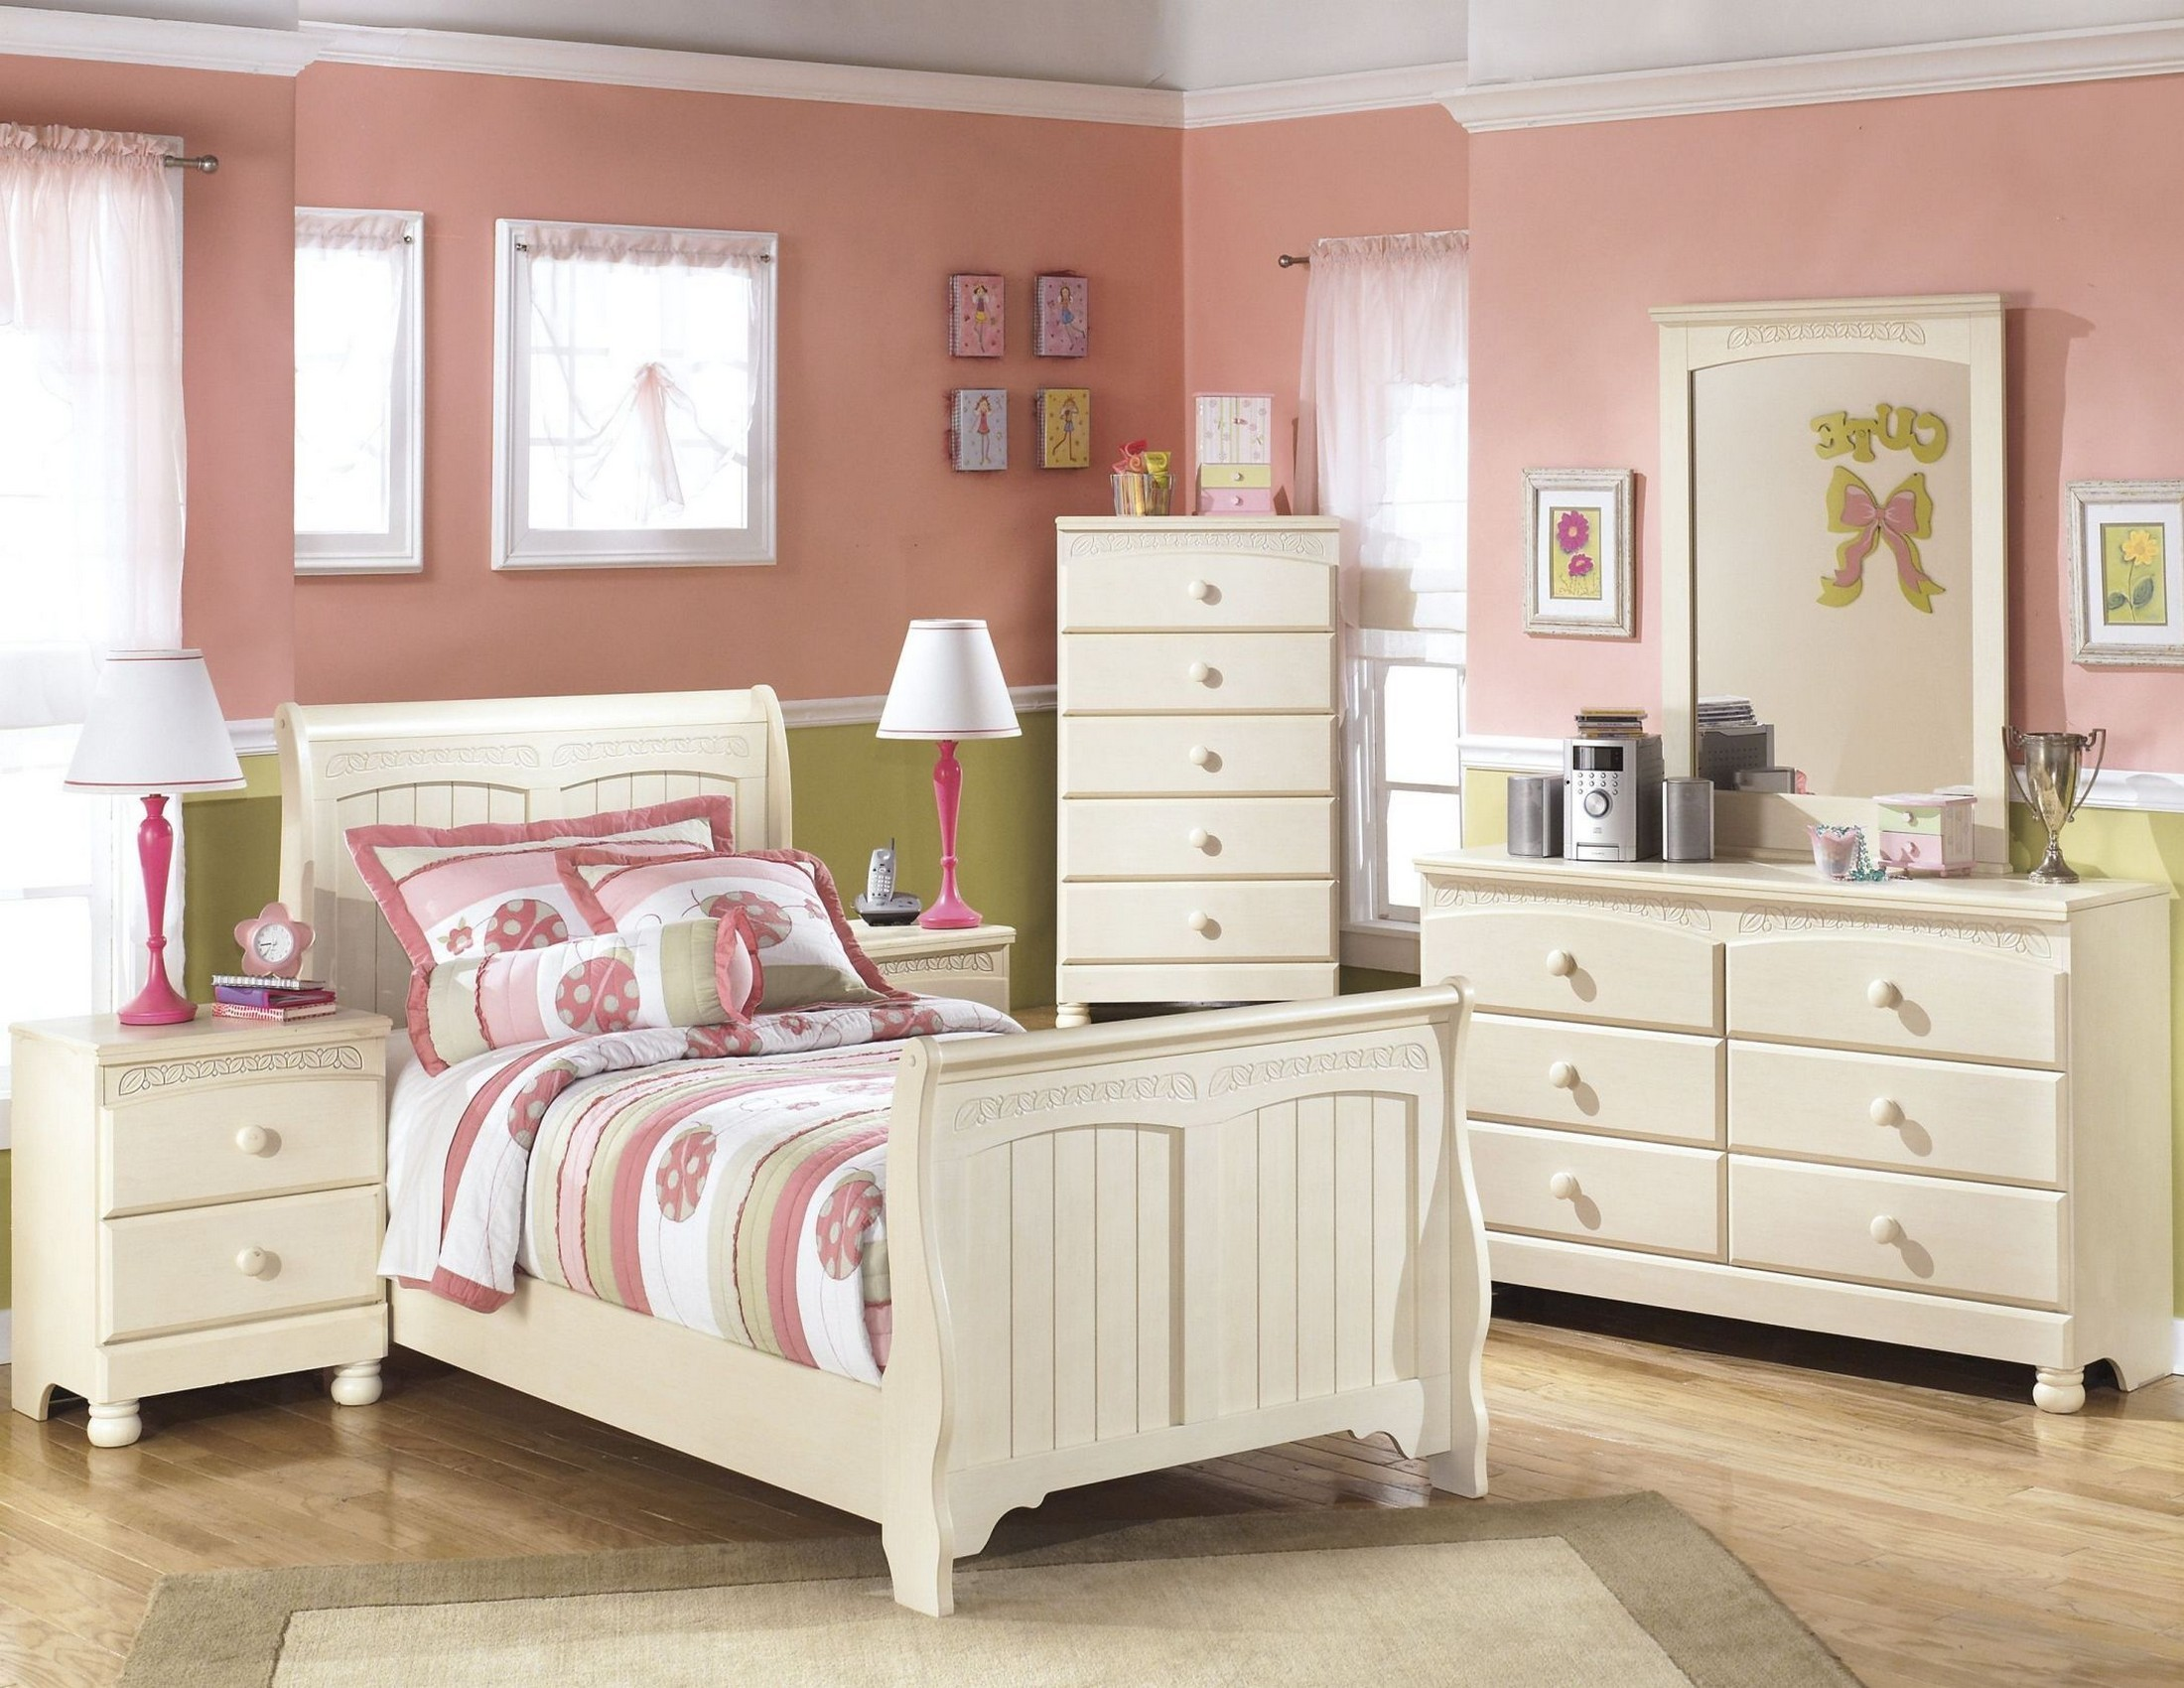 Cottage retreat youth sleigh bedroom set from ashley b213 for Cottage retreat ii